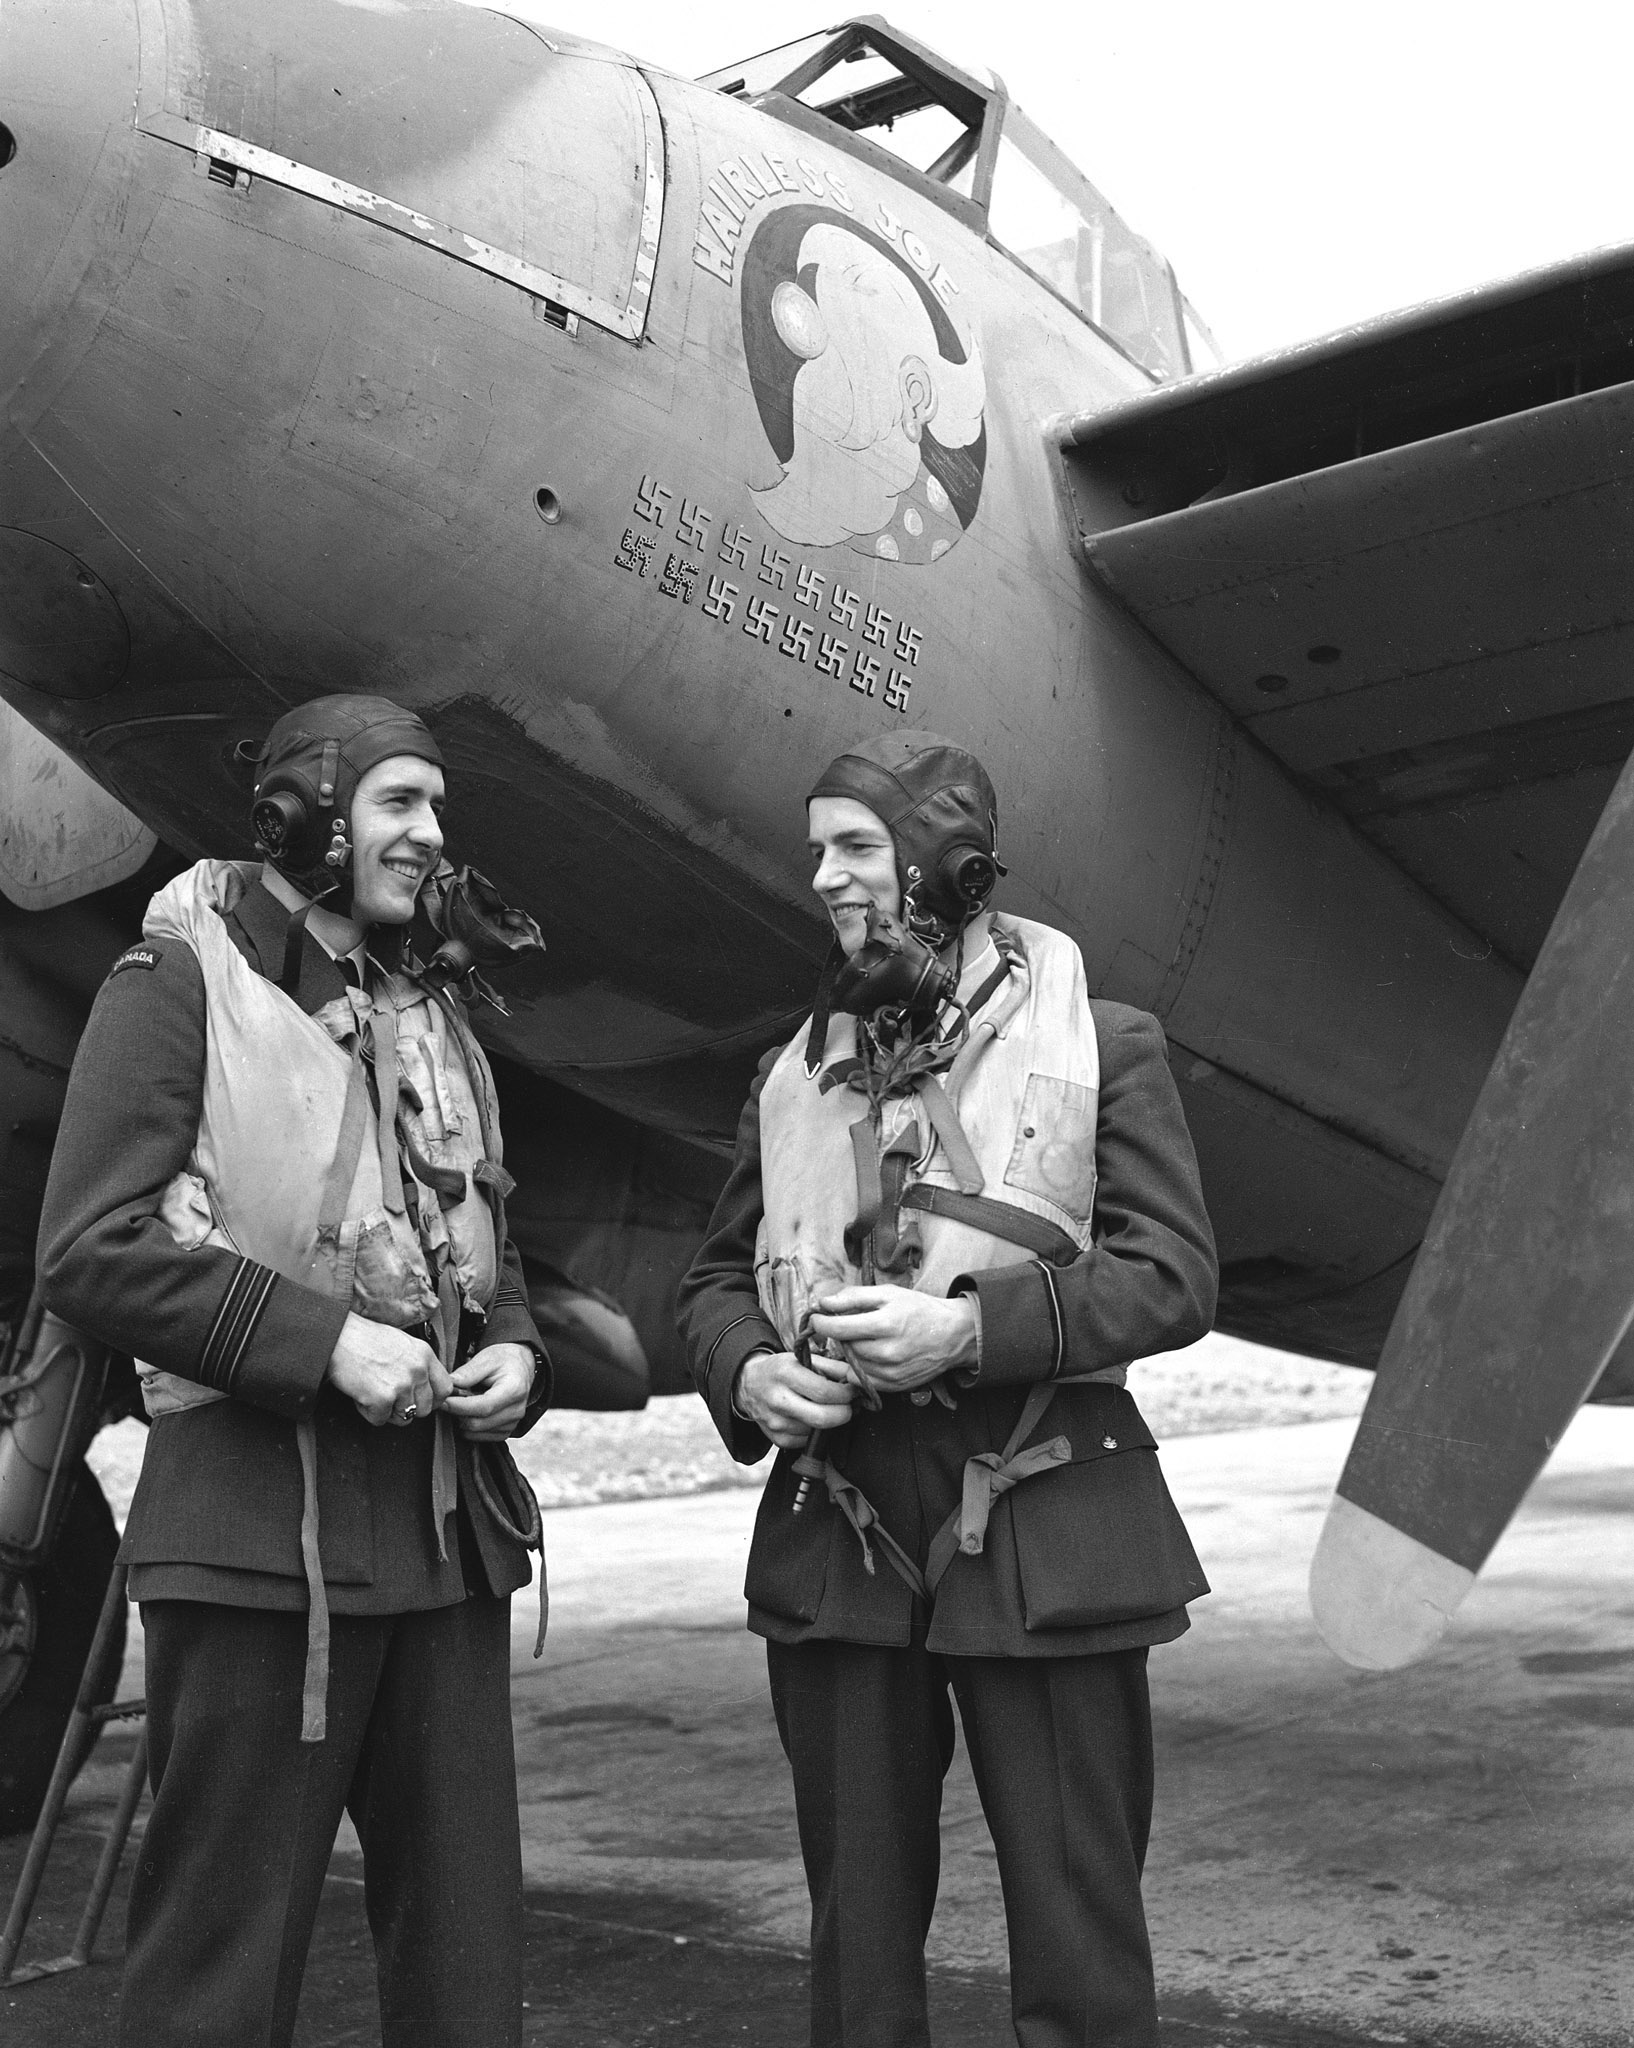 Squadron Leader Russell Bannock (left) of the Royal Canadian Air Force and Flying Officer Robert Bruce of the Royal Air Force, in an undated photograph. PHOTO: DND Archives, PL-31295